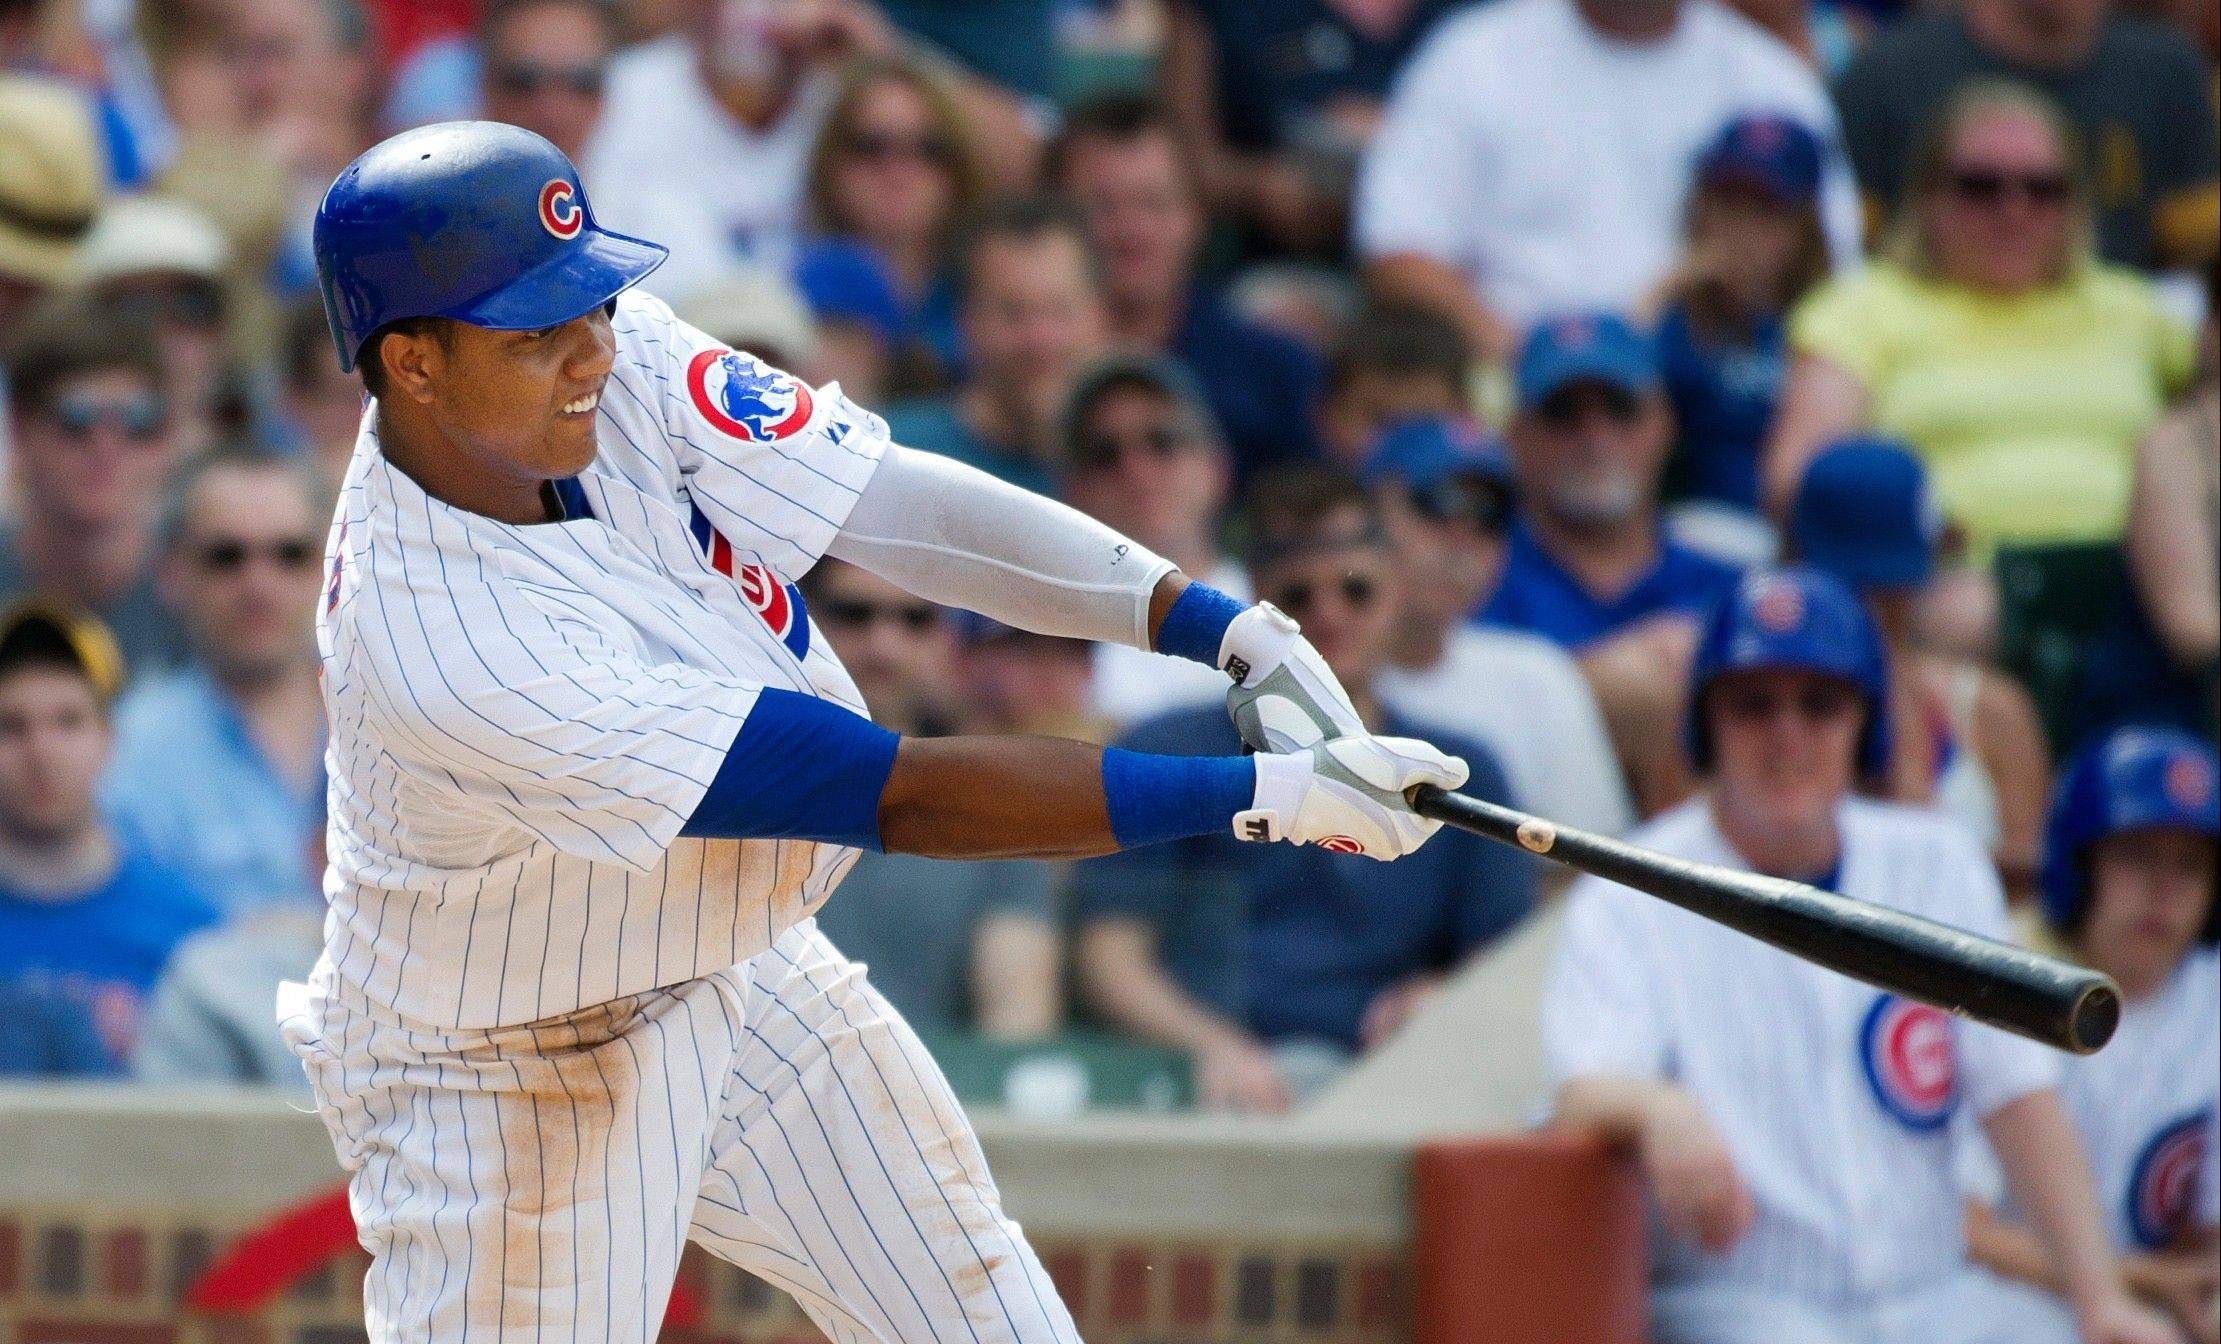 With more teams chasing the extra wild-card spot this season, Matt Spiegel believes the Cubs will have a seller's market for some key players, and they should listen to all offers -- even for Starlin Castro if they can get exceptional value in return.